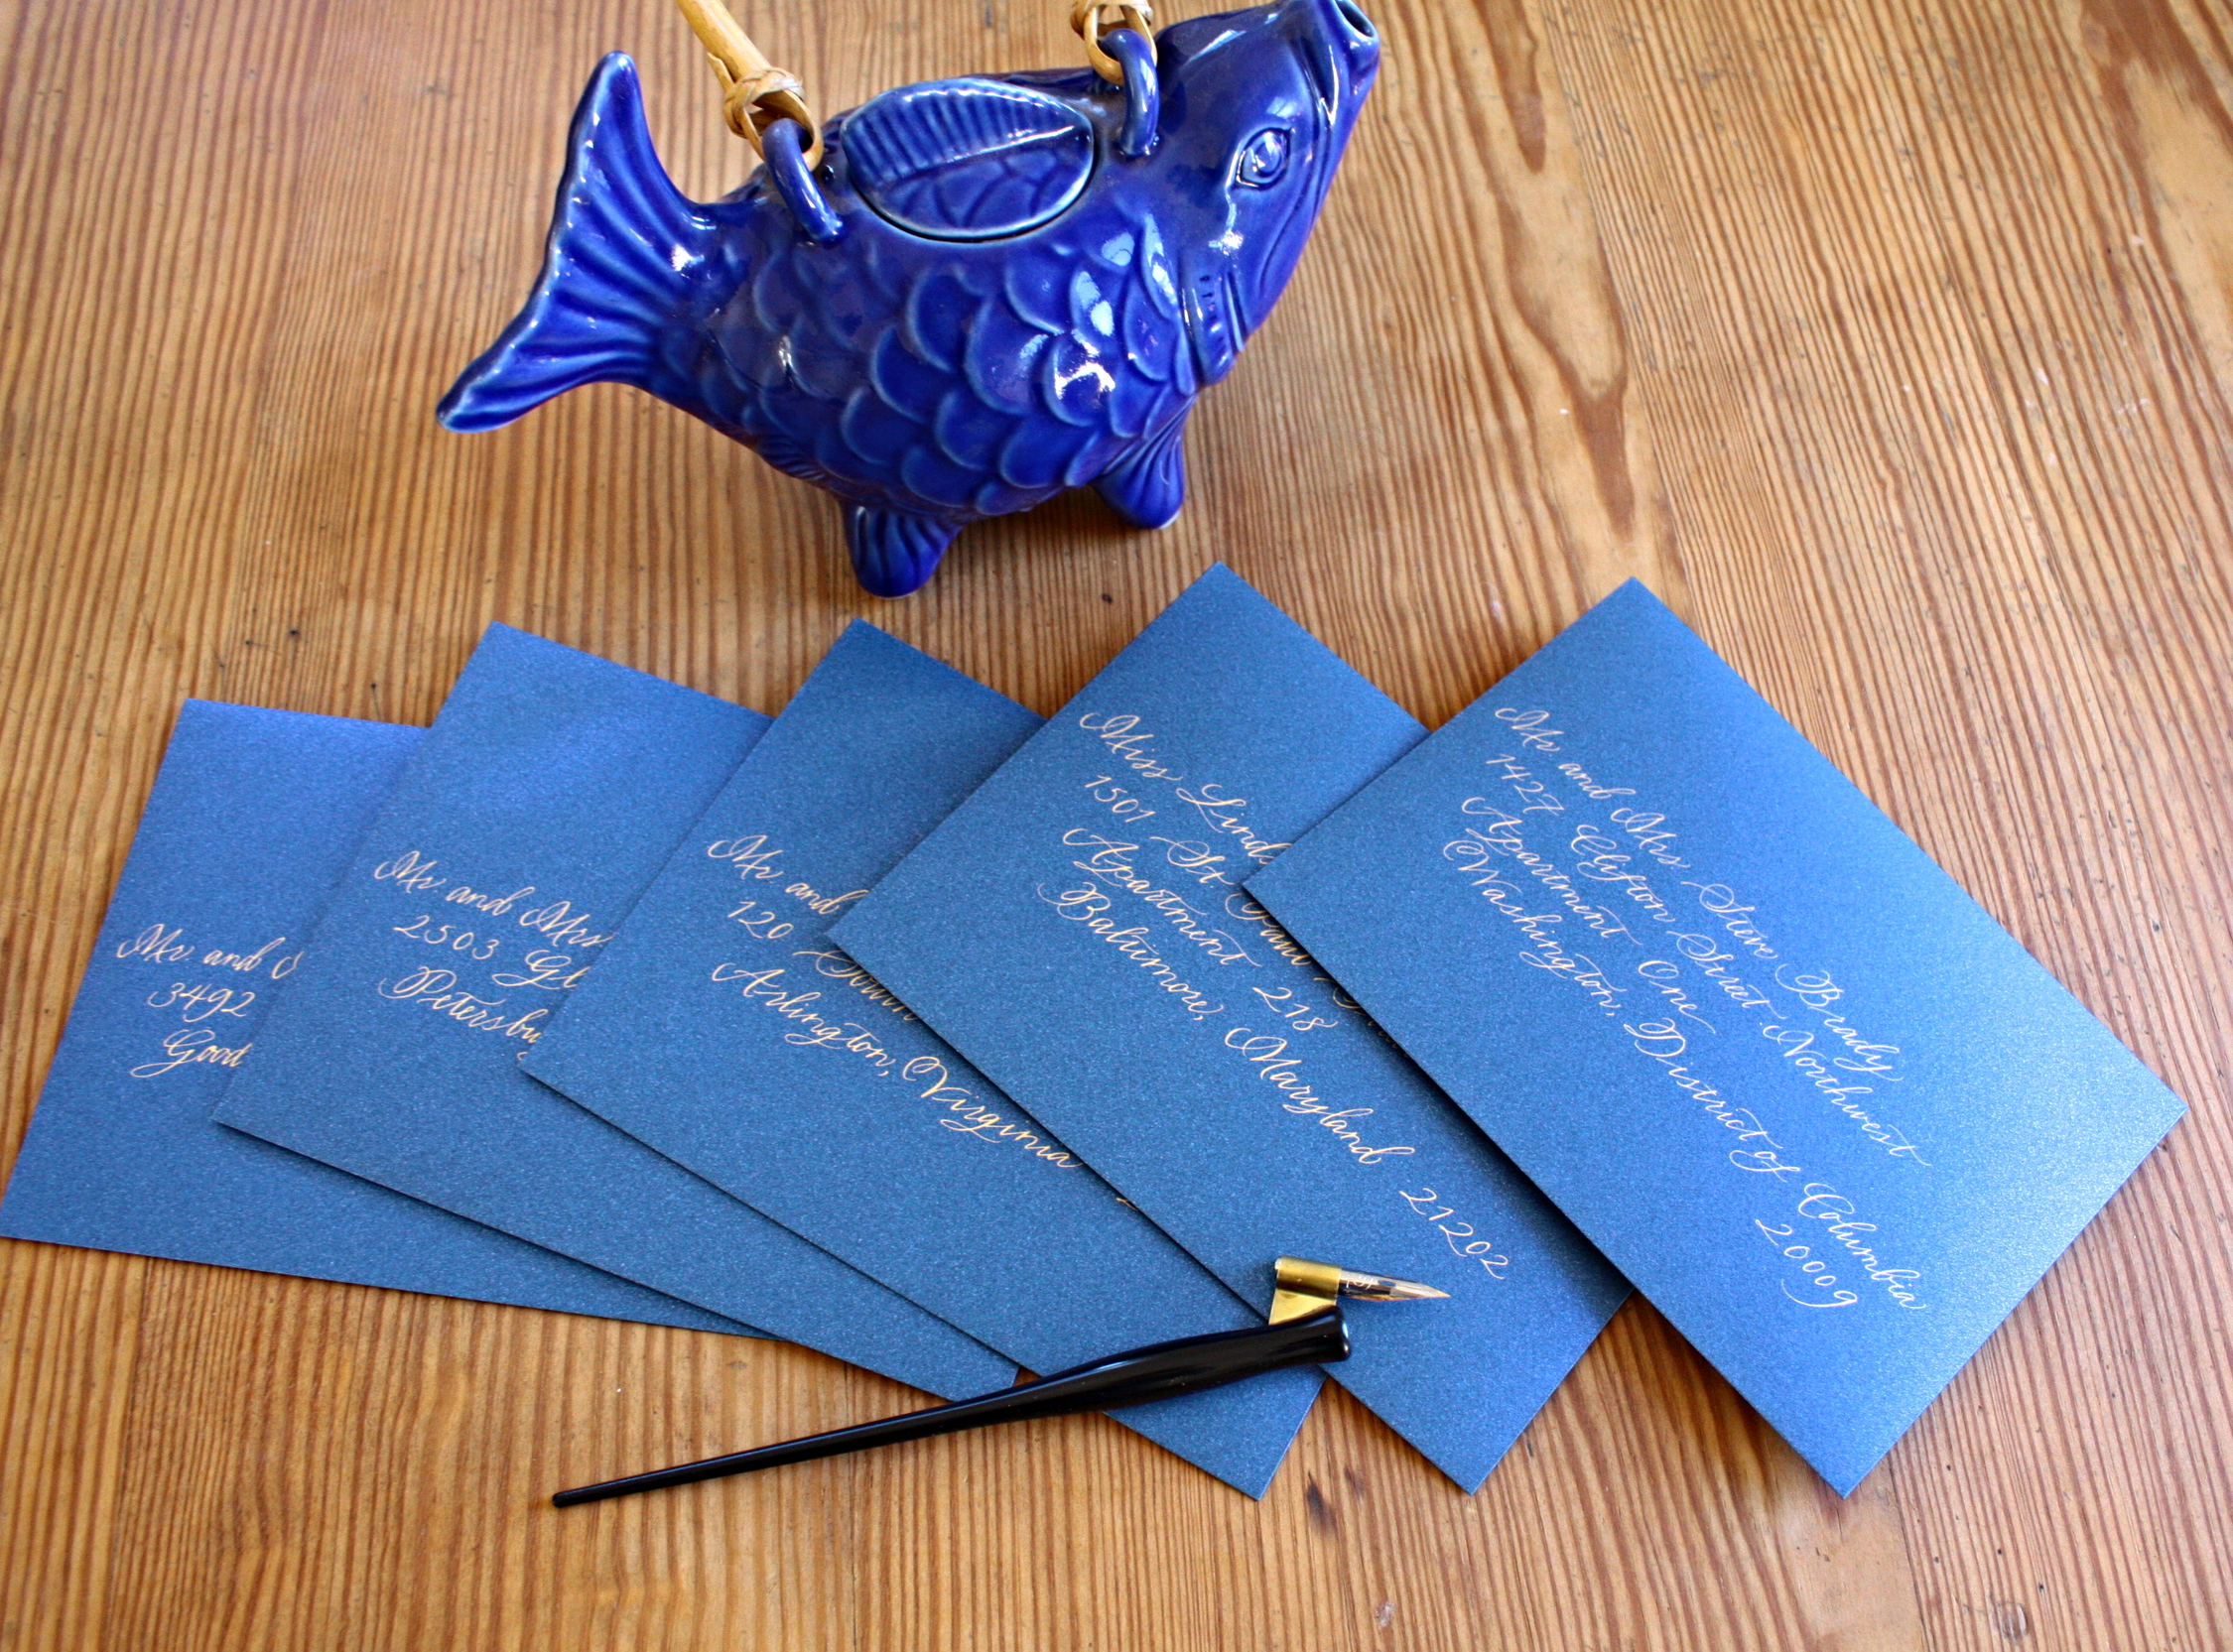 Bluestocking Calligraphy / Wedding invitation envelopes in gold ink